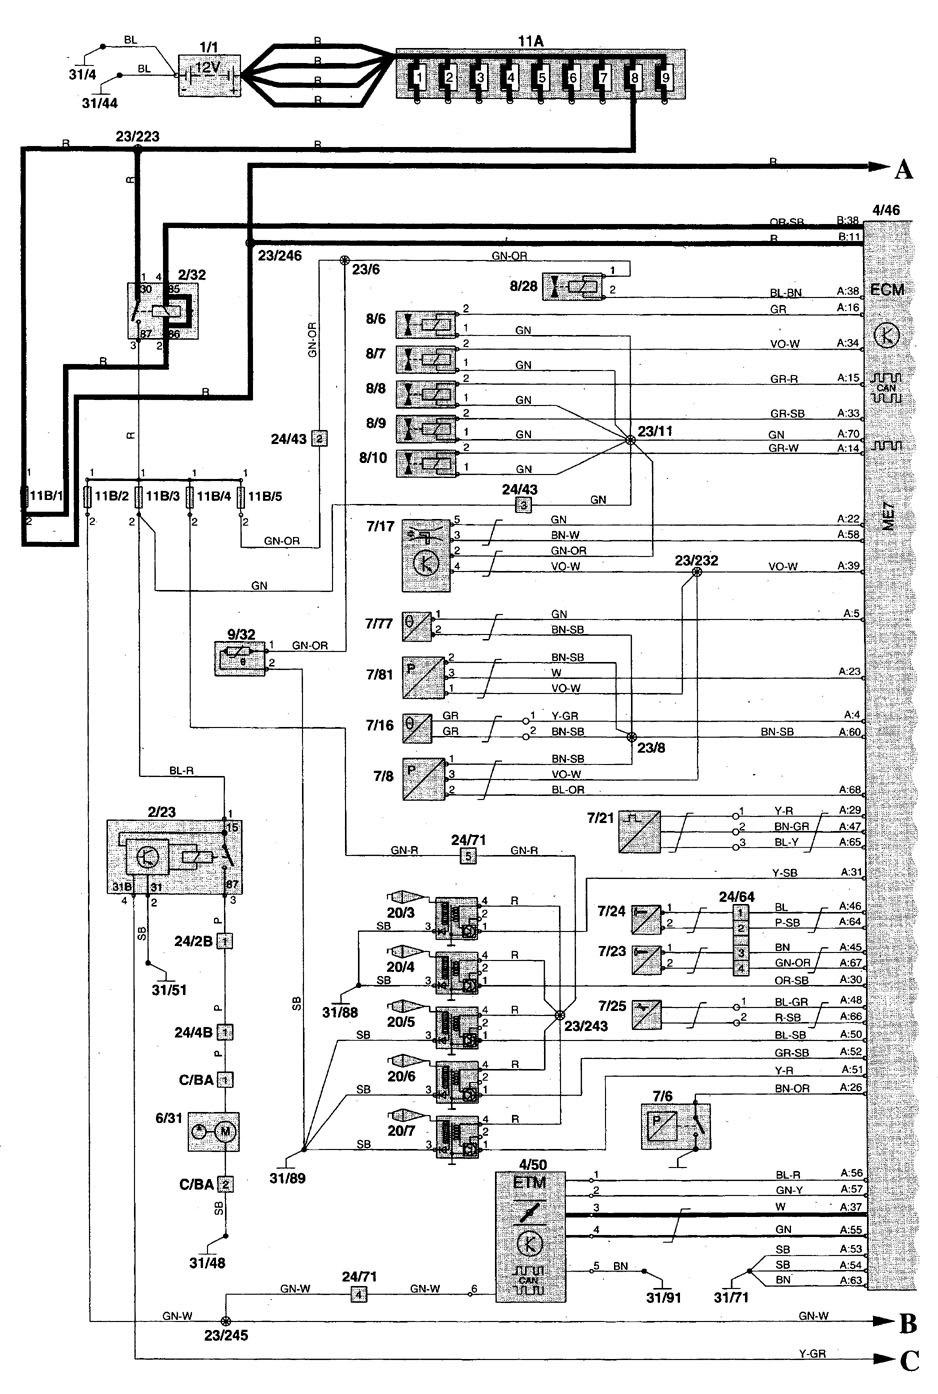 hight resolution of volvo c70 1999 2004 wiring diagrams fuel pump volvo 850 fuel pump relay diagram volvo 740 fuel pump relay diagram